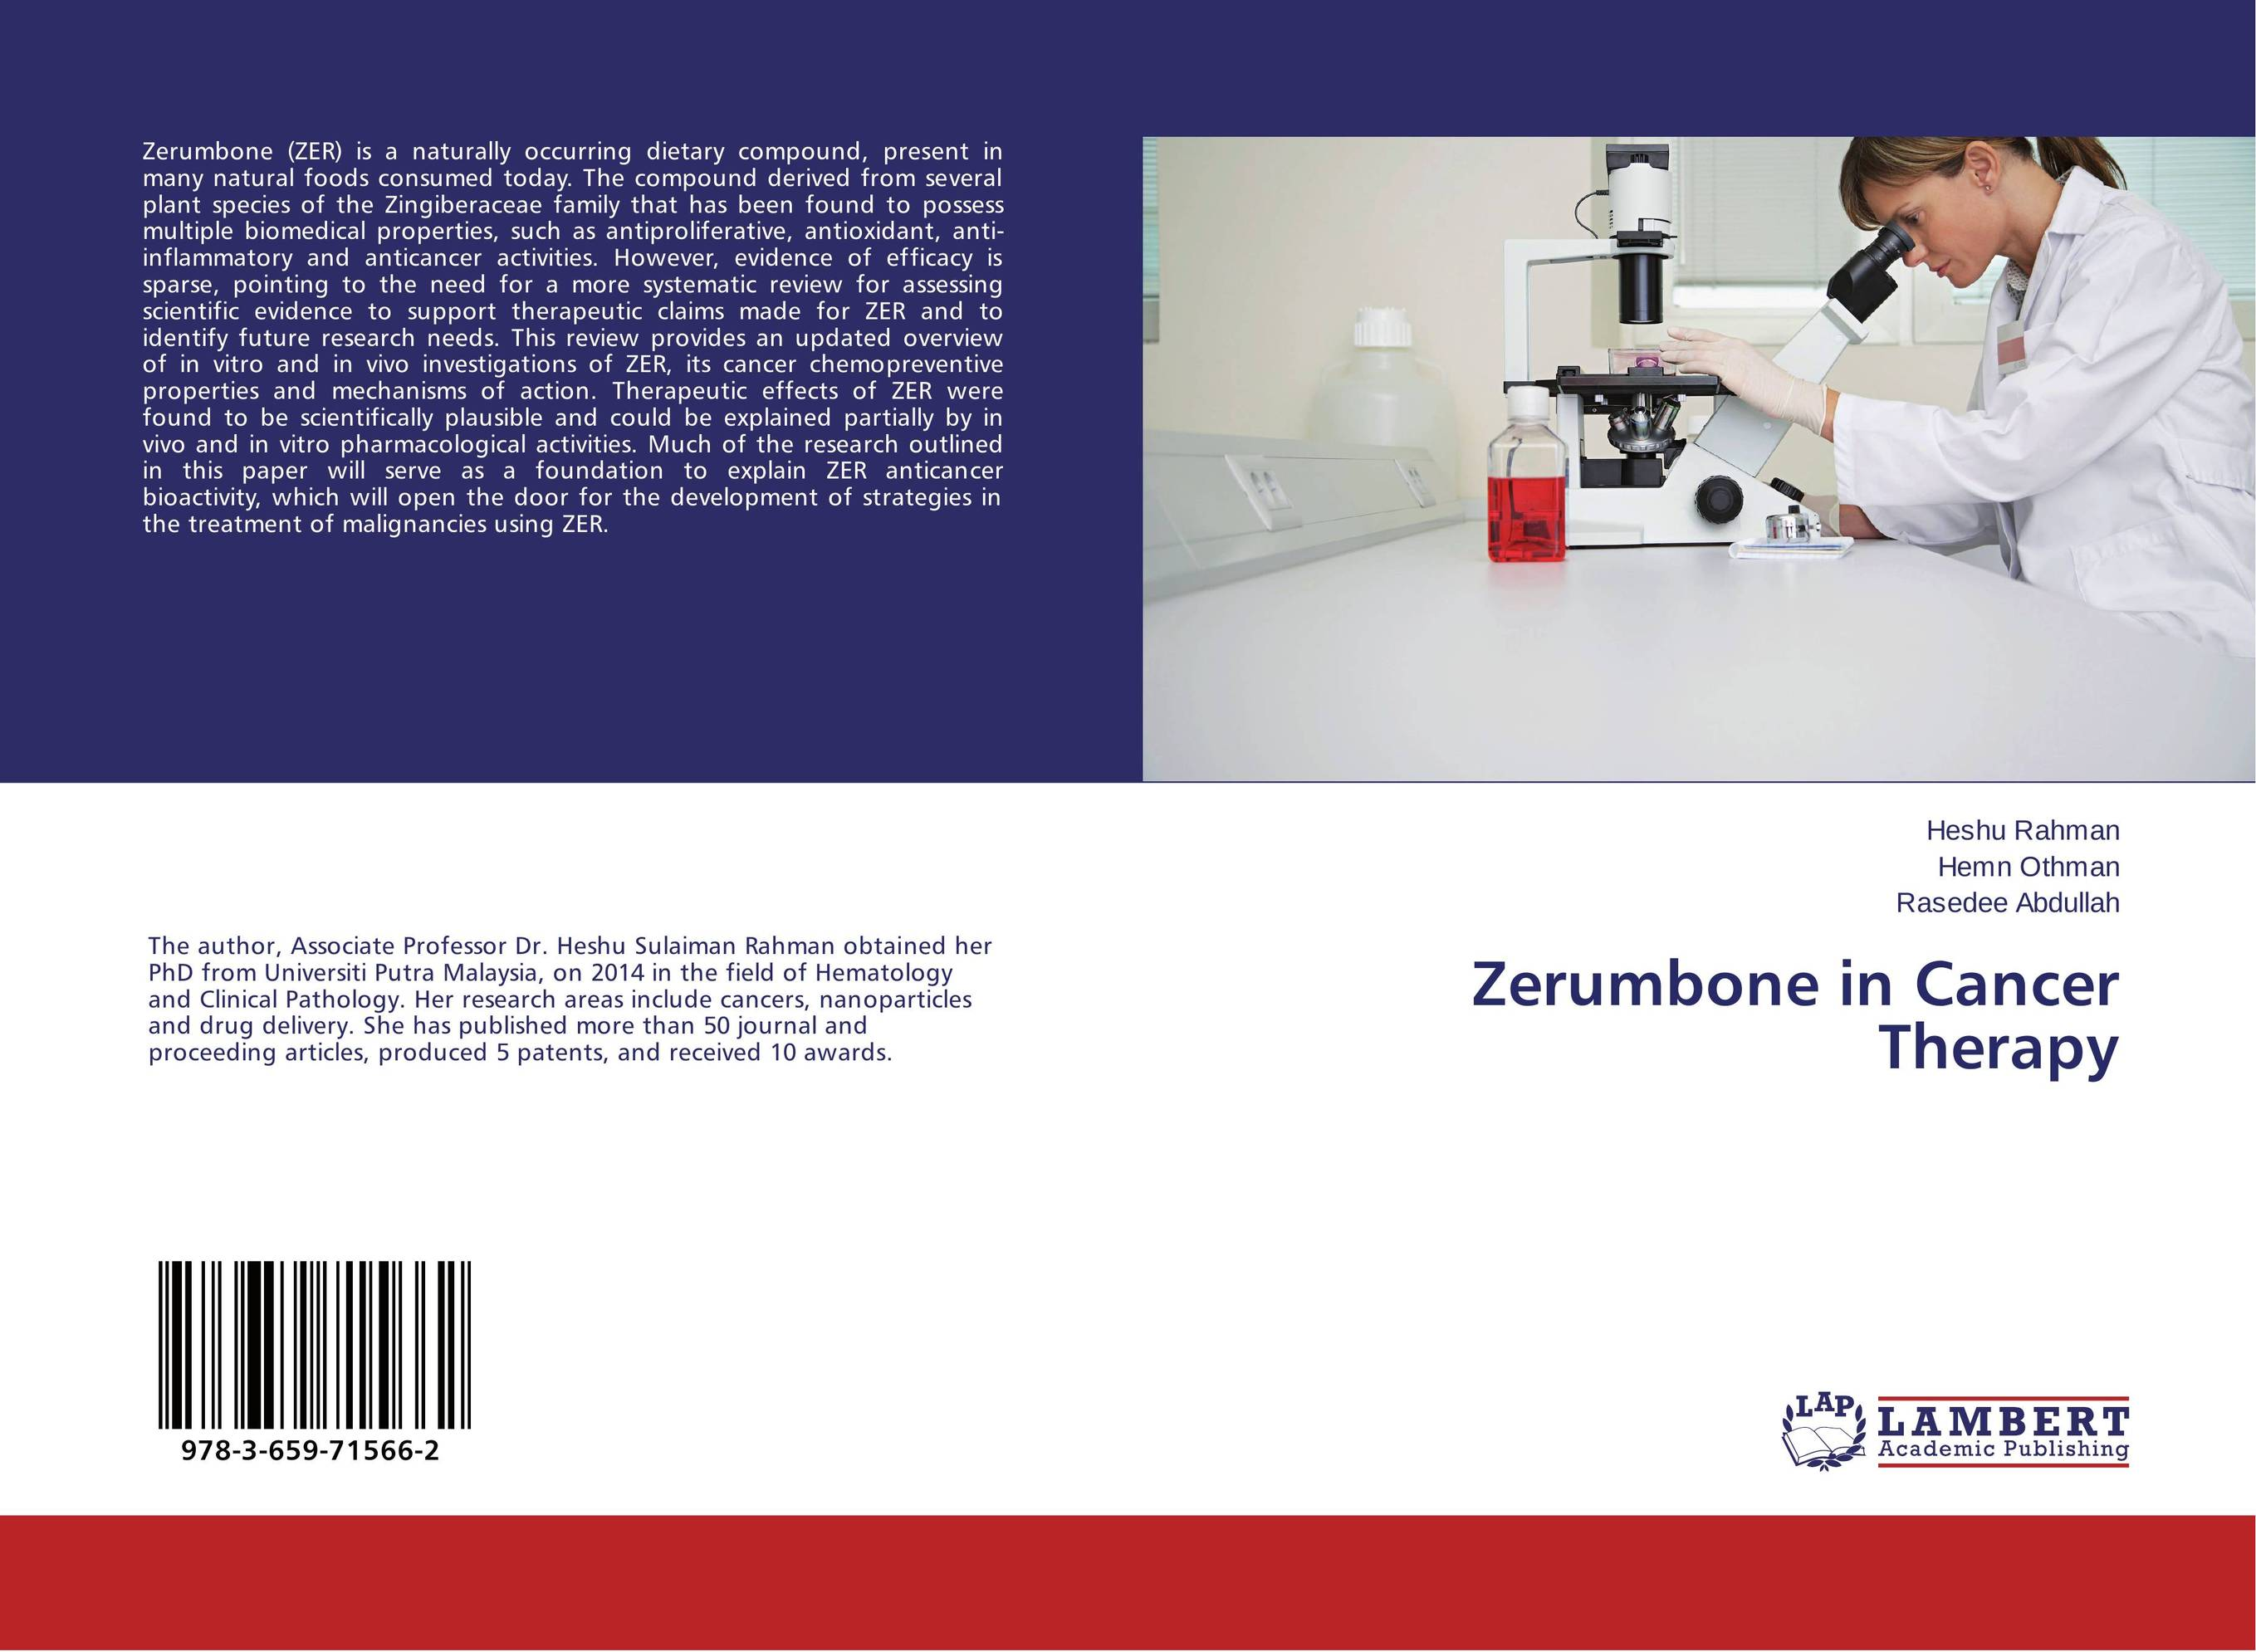 Zerumbone in Cancer Therapy